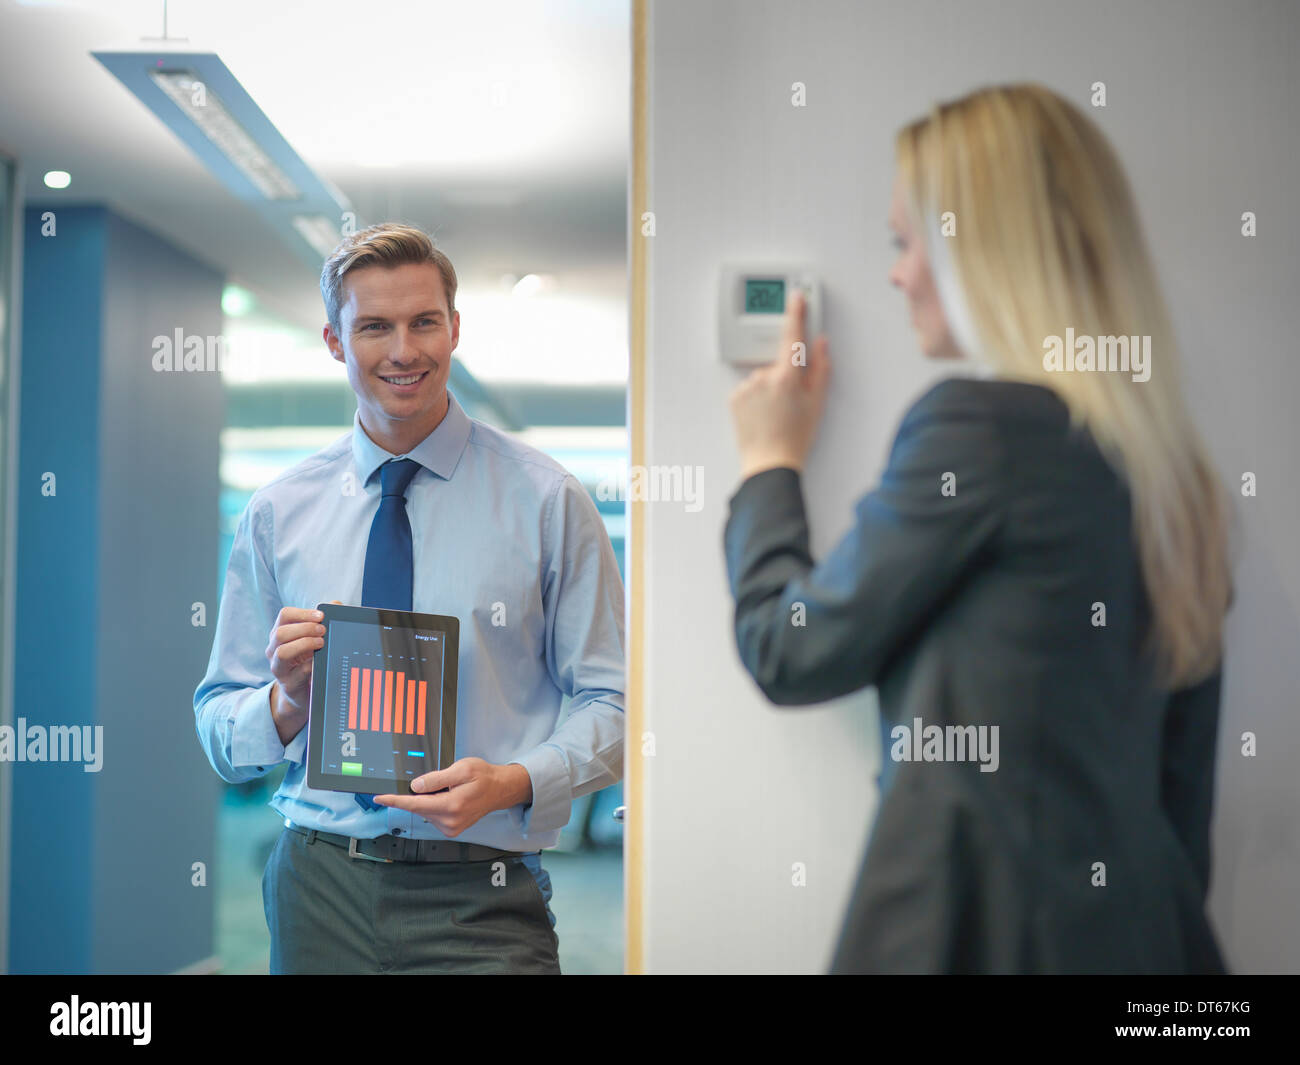 Office workers adjusting heating thermostat and recording information on digital tablet - Stock Image